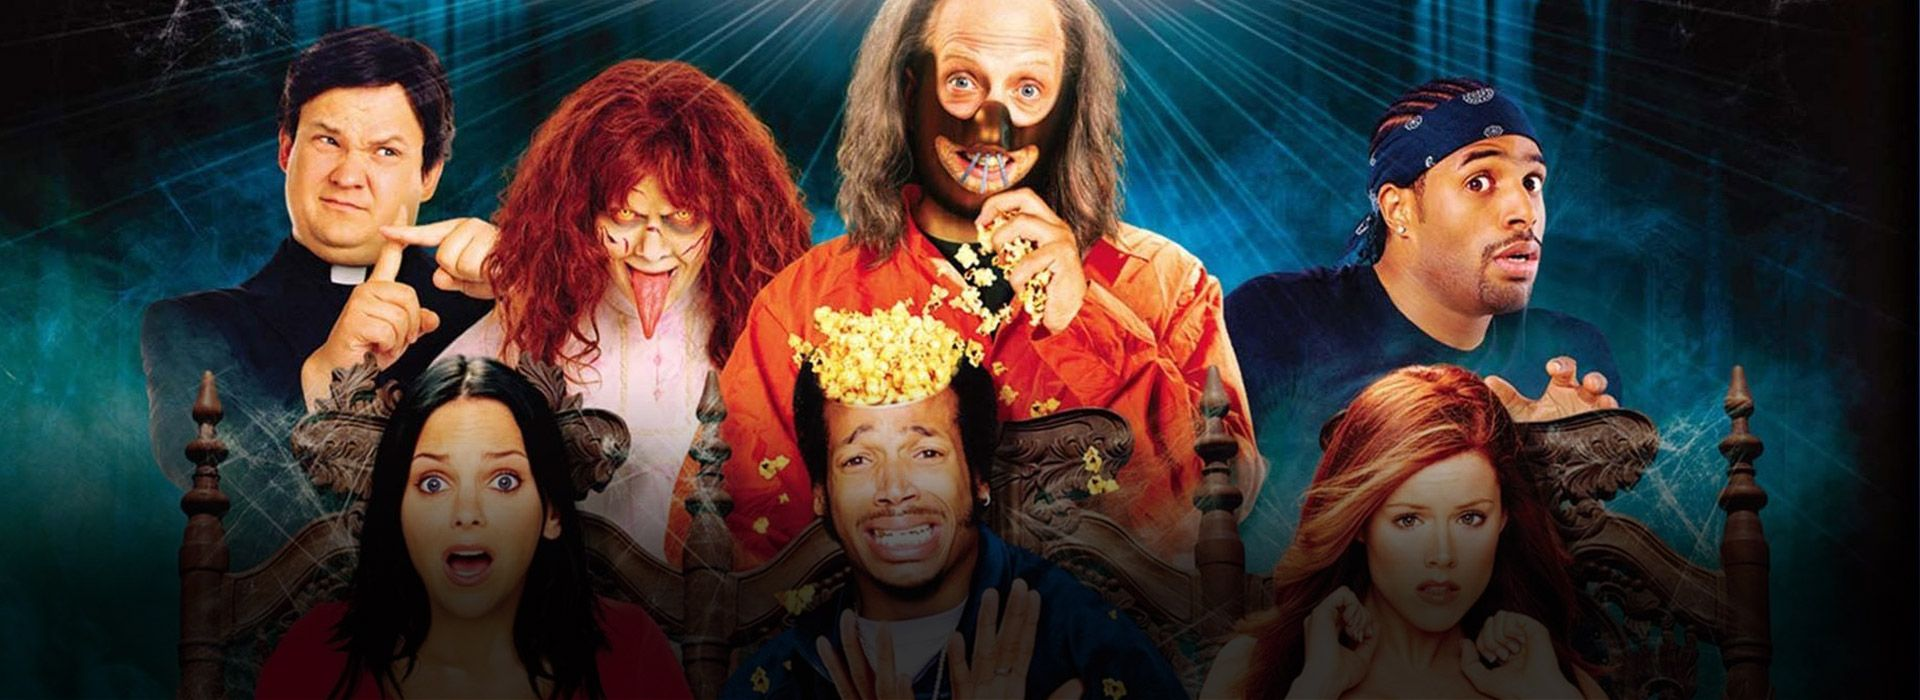 scary movie 2 streaming vk ita